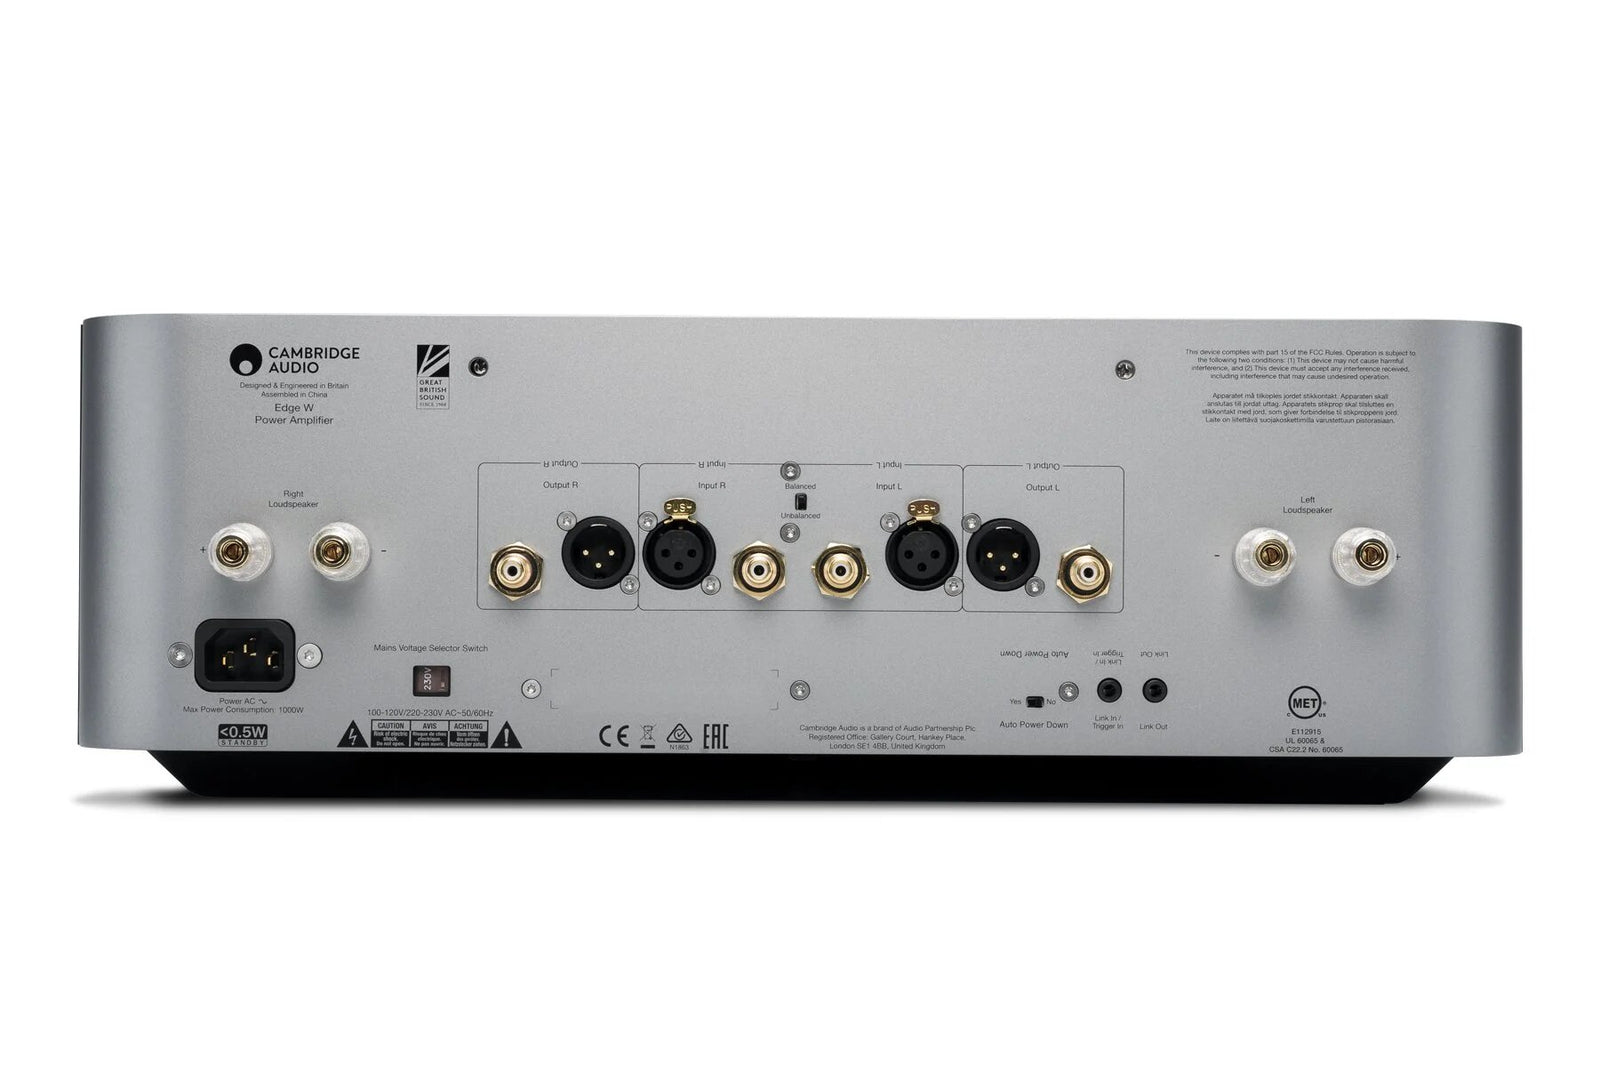 CAMBRIDGE EDGE W POWER AMPLIFIER